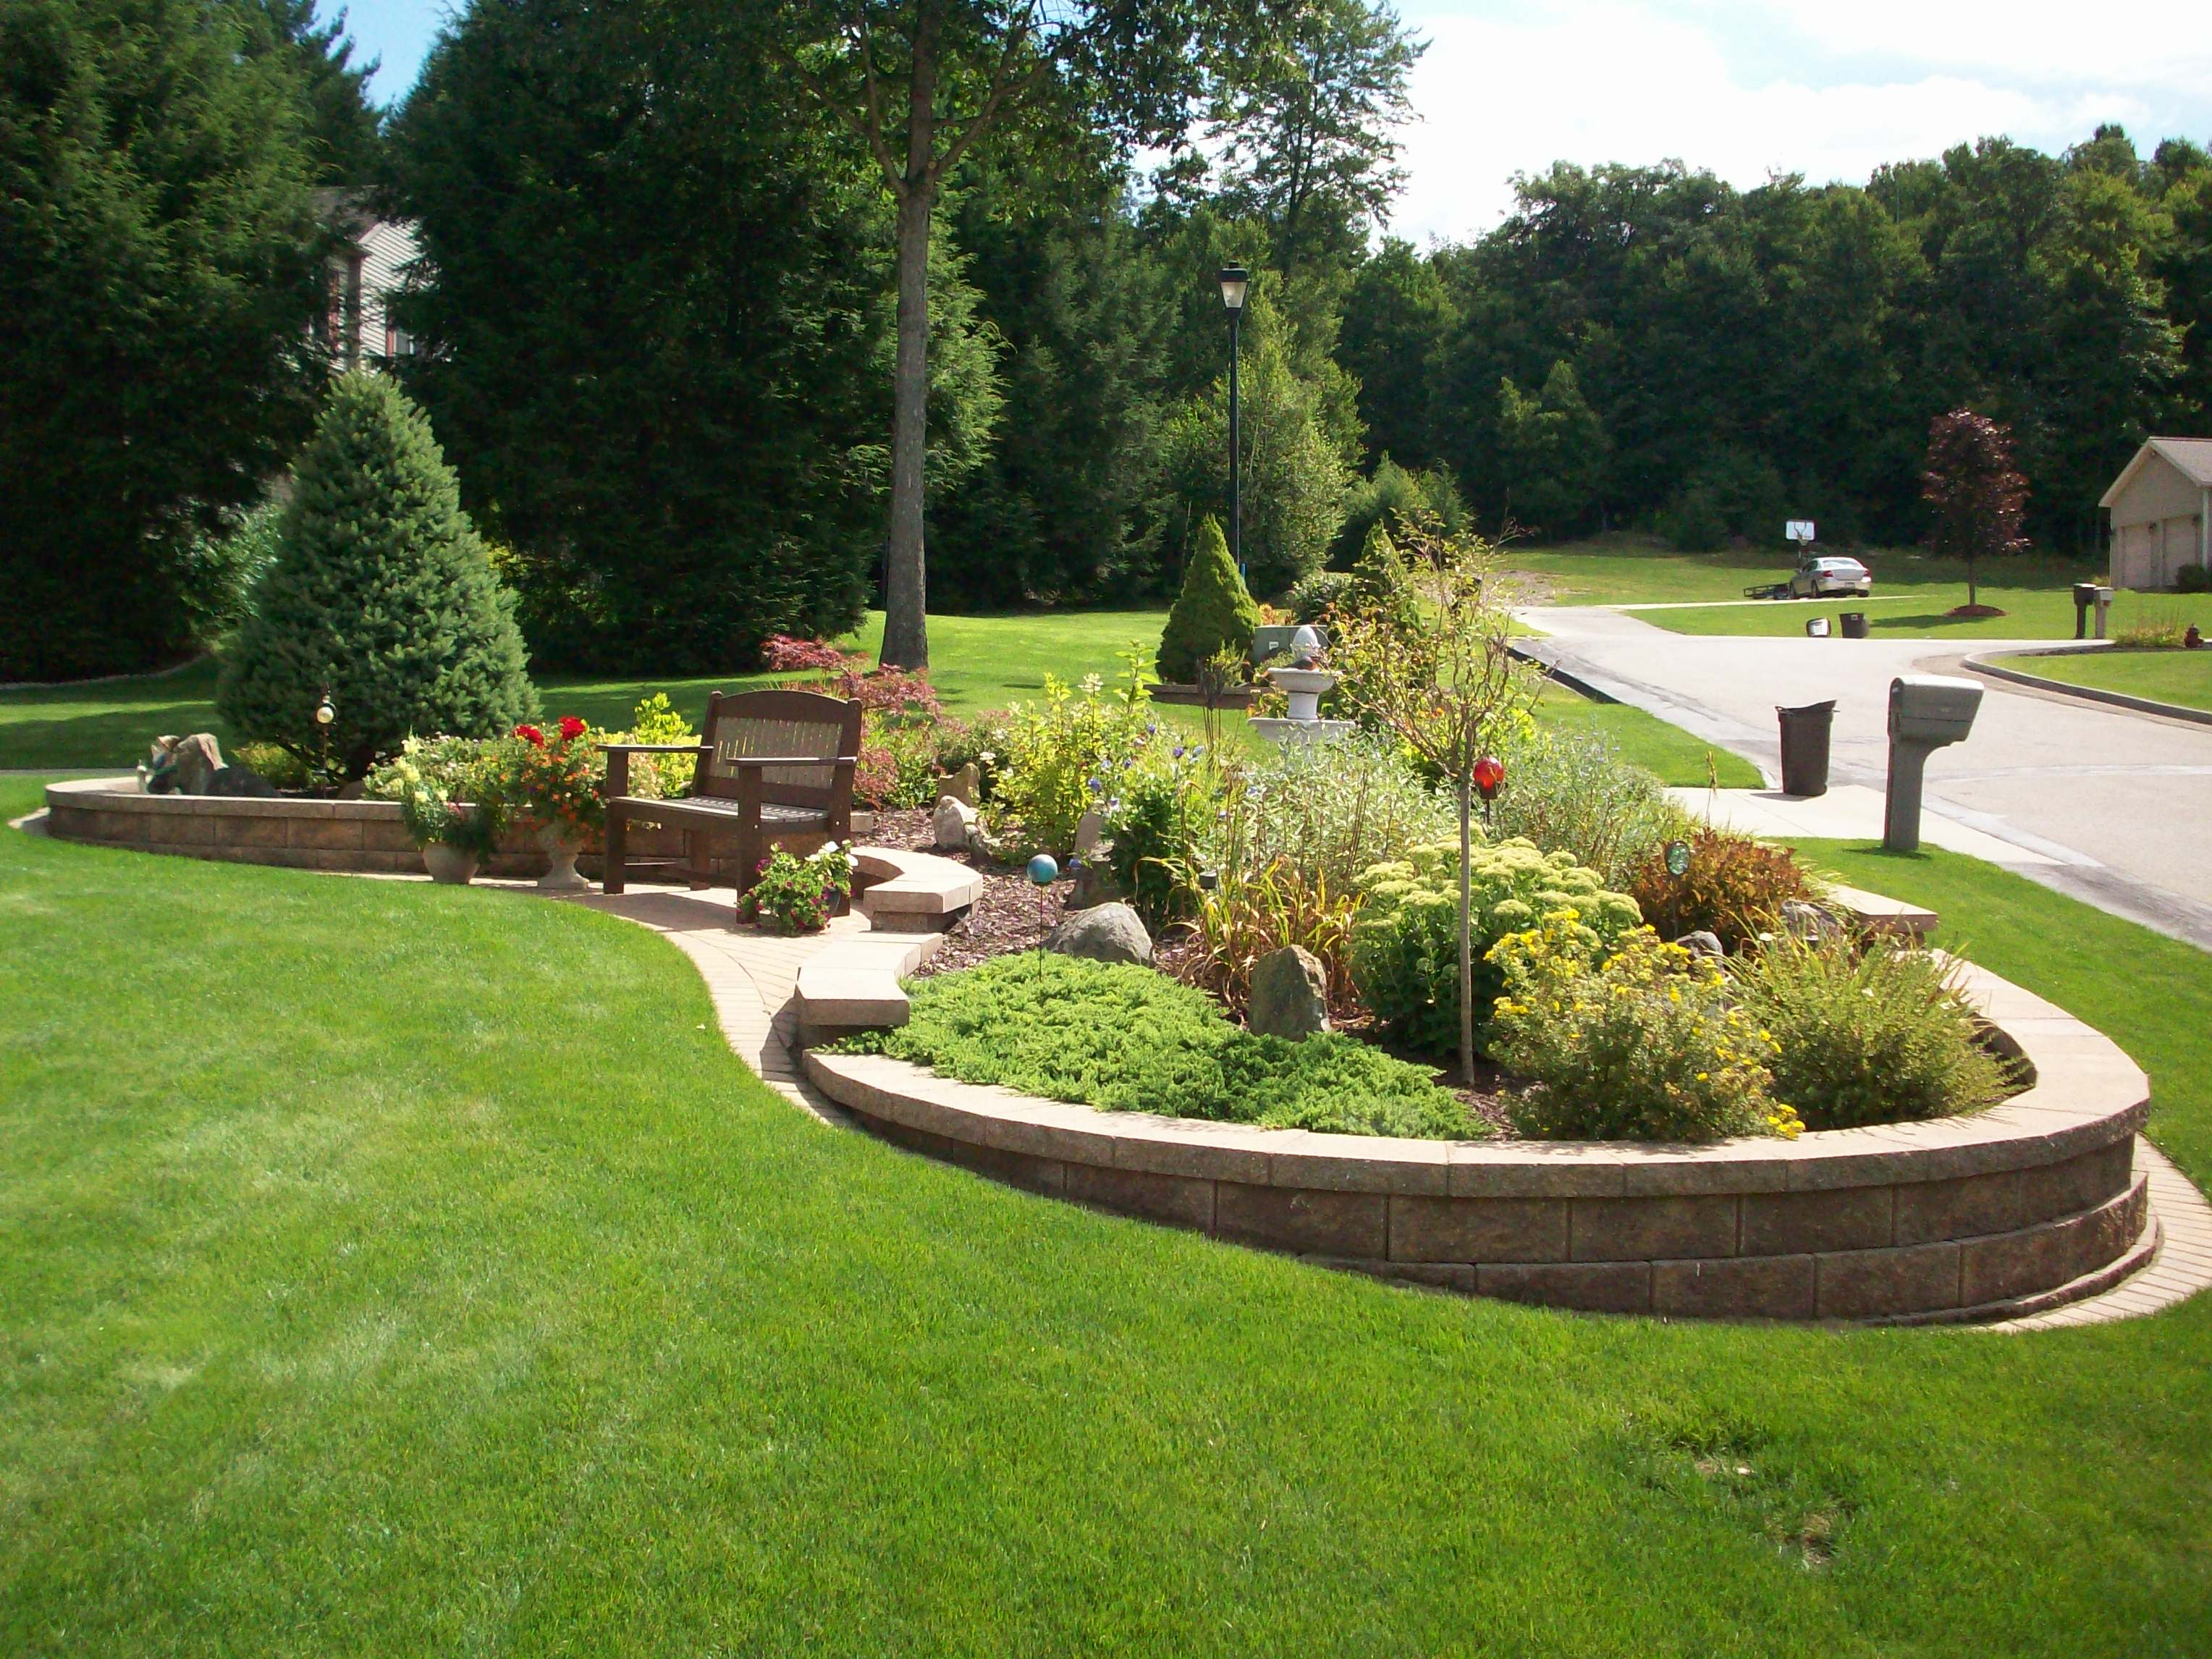 Garden And Landscaping Garden center and landscape design services in clarion county local landscaping clarion county pa workwithnaturefo